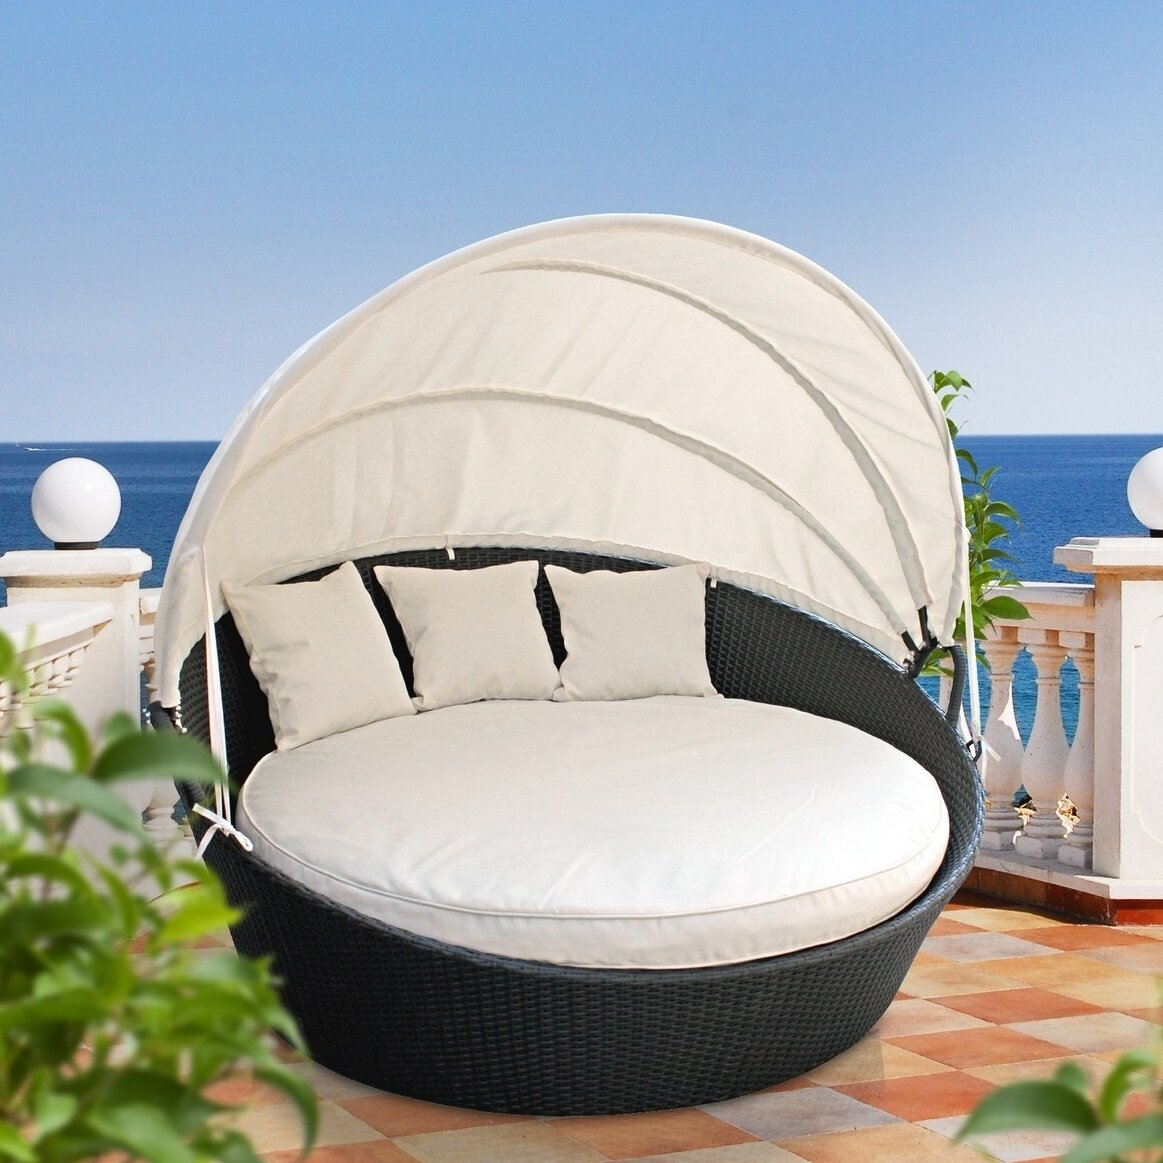 Brayden Studio Holden Canopy Outdoor Patio Daybed with